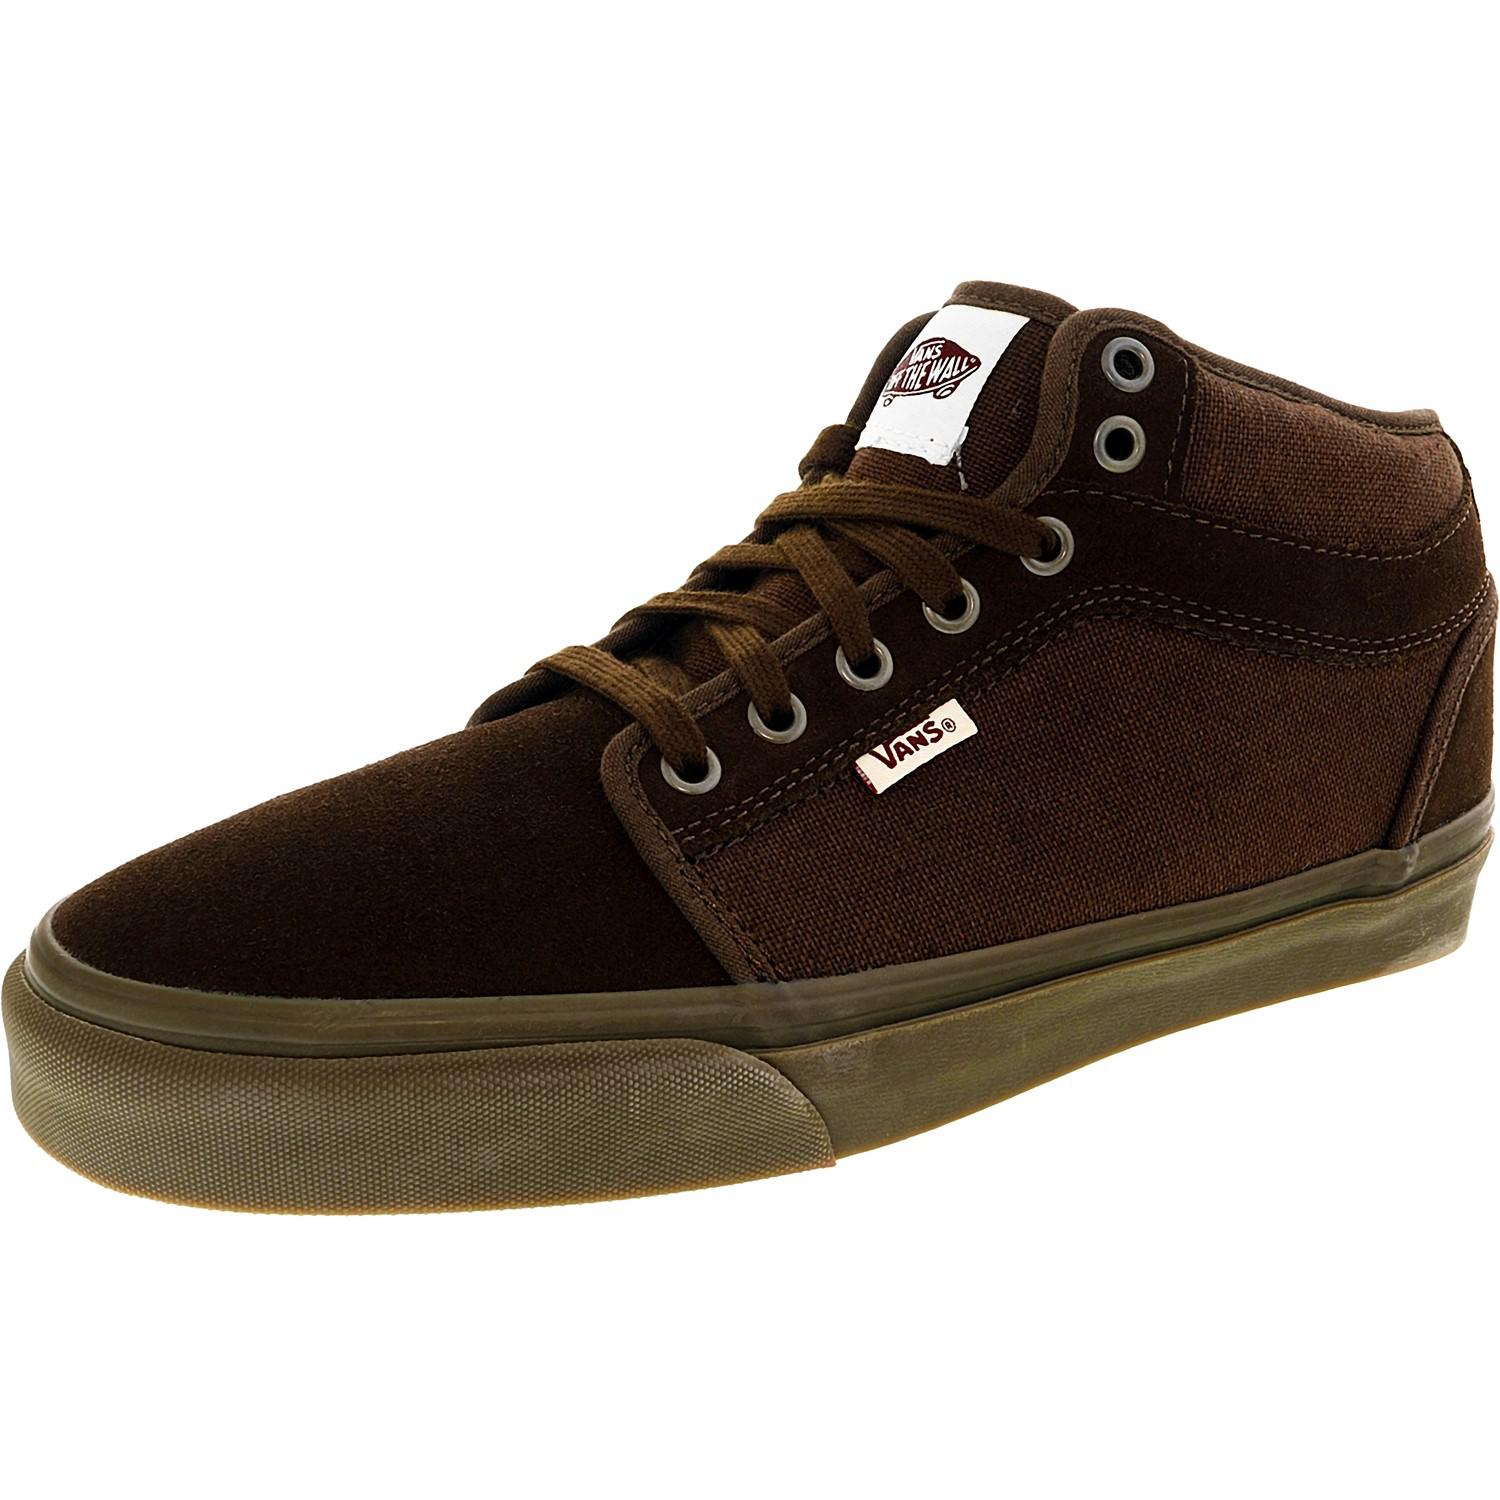 f7d3197dae Lyst - Vans Chukka Midtop Brown   Gum Ankle-high Suede Fashion ...